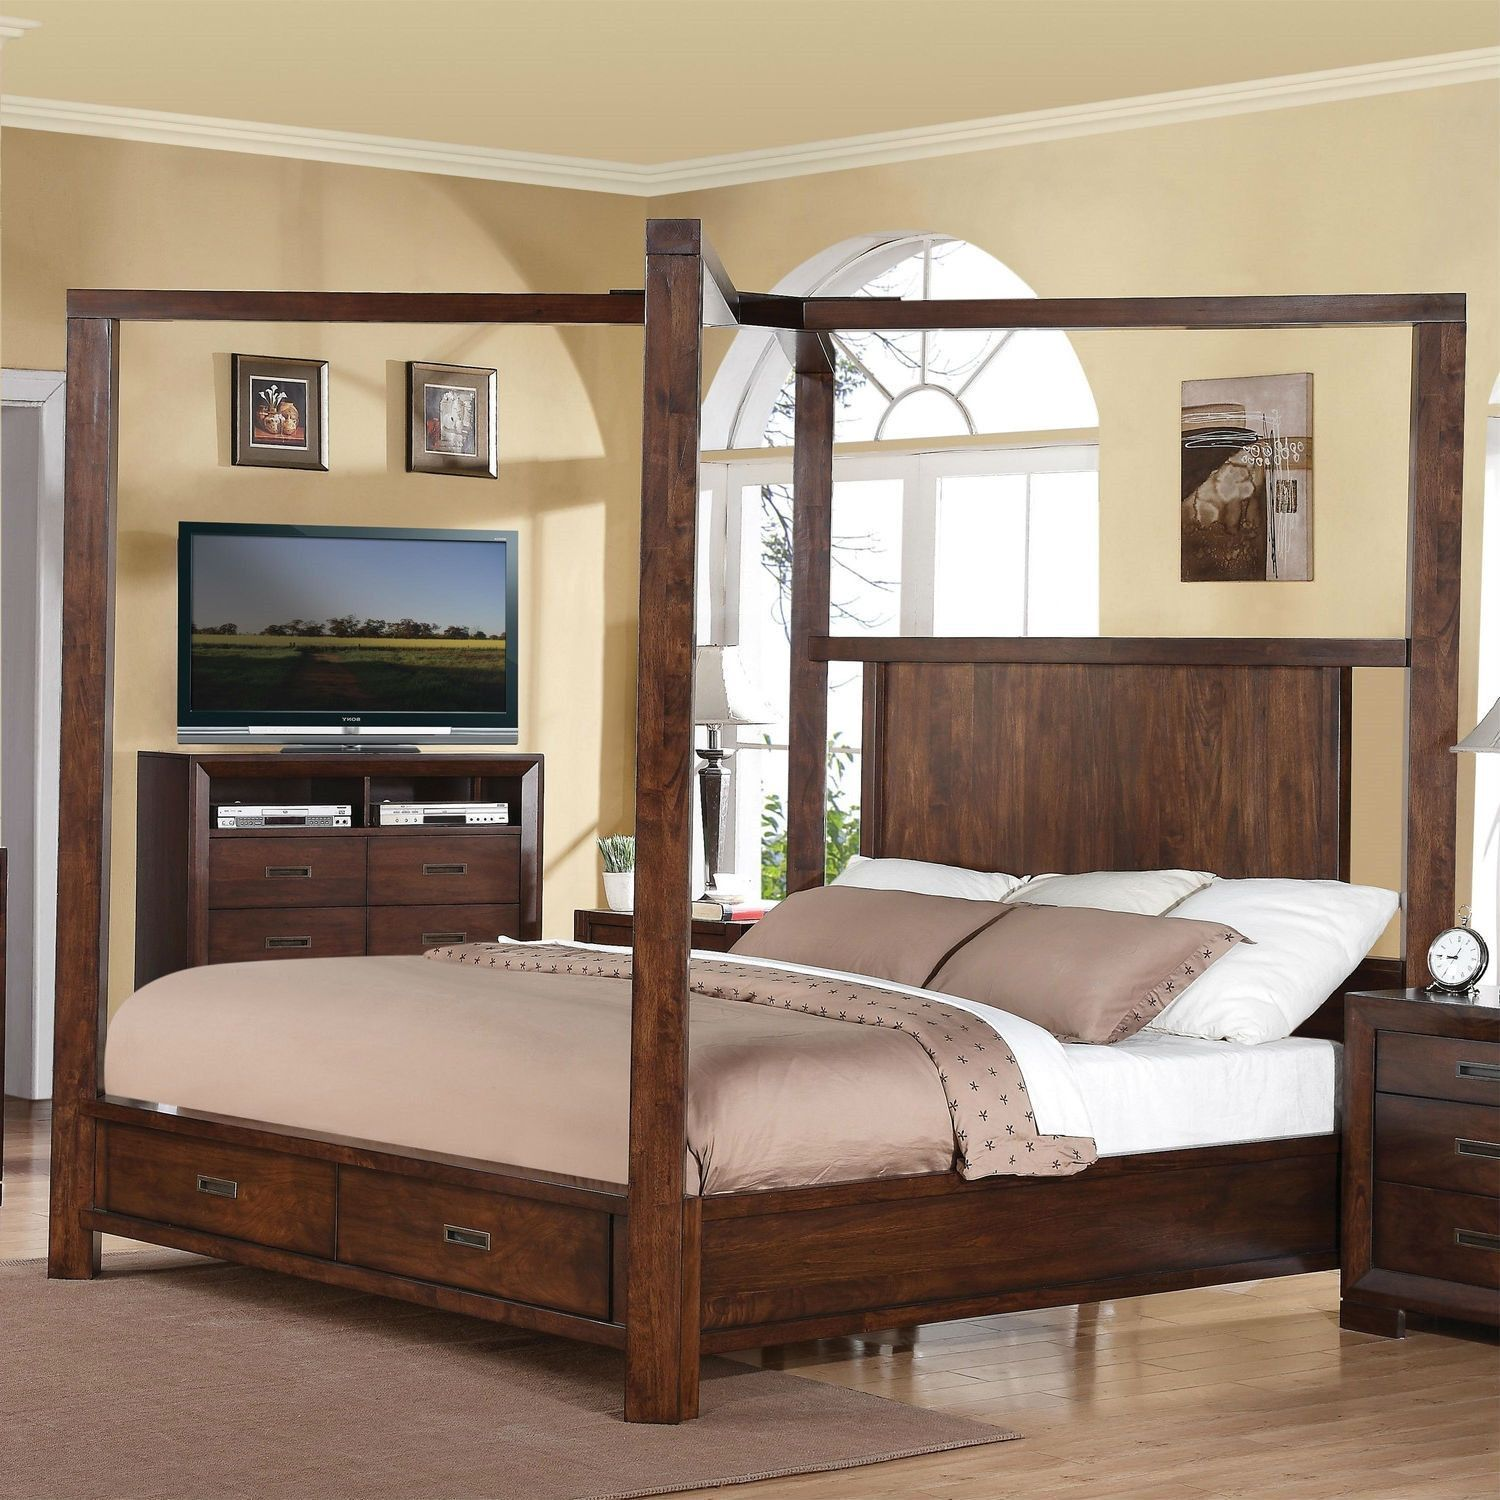 Contemporary Queen Size Wood Canopy Bed with Storage Drawers in